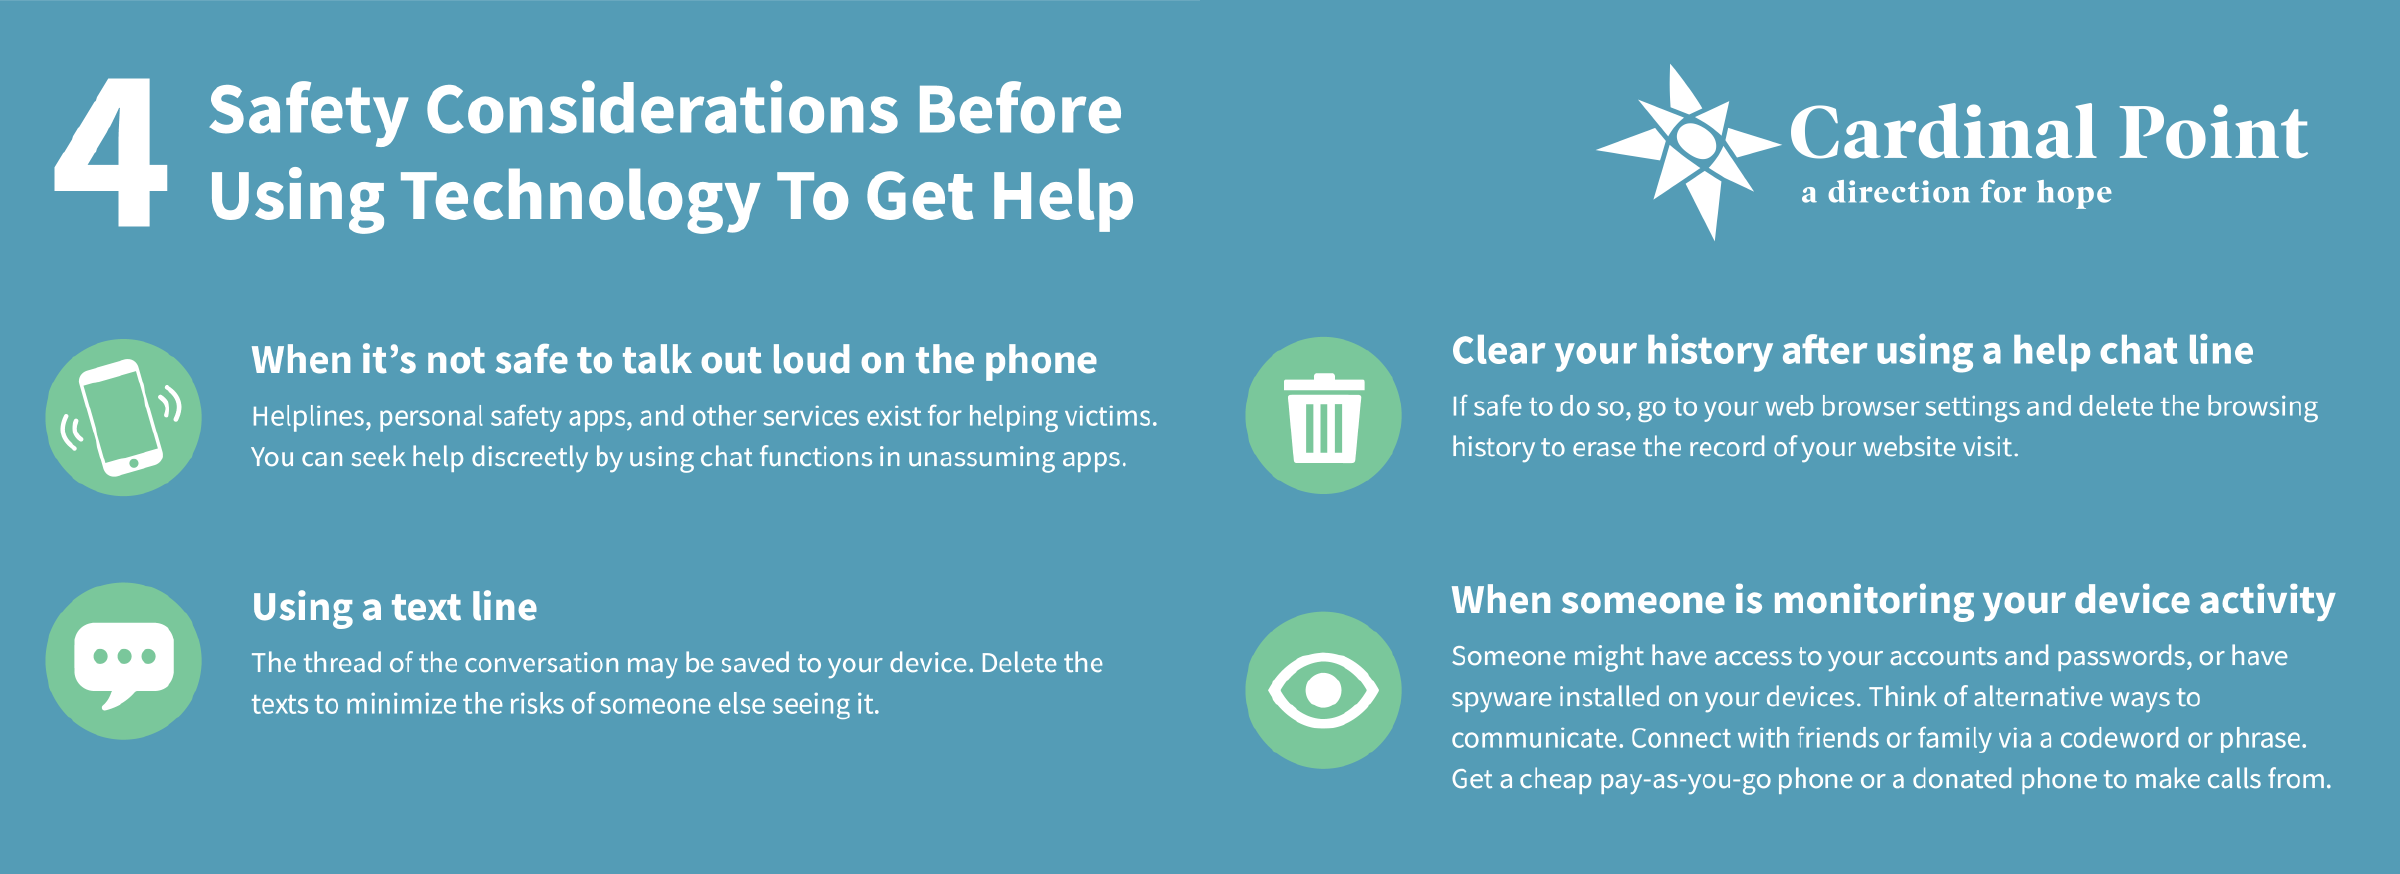 safety considerations before using technology to get help